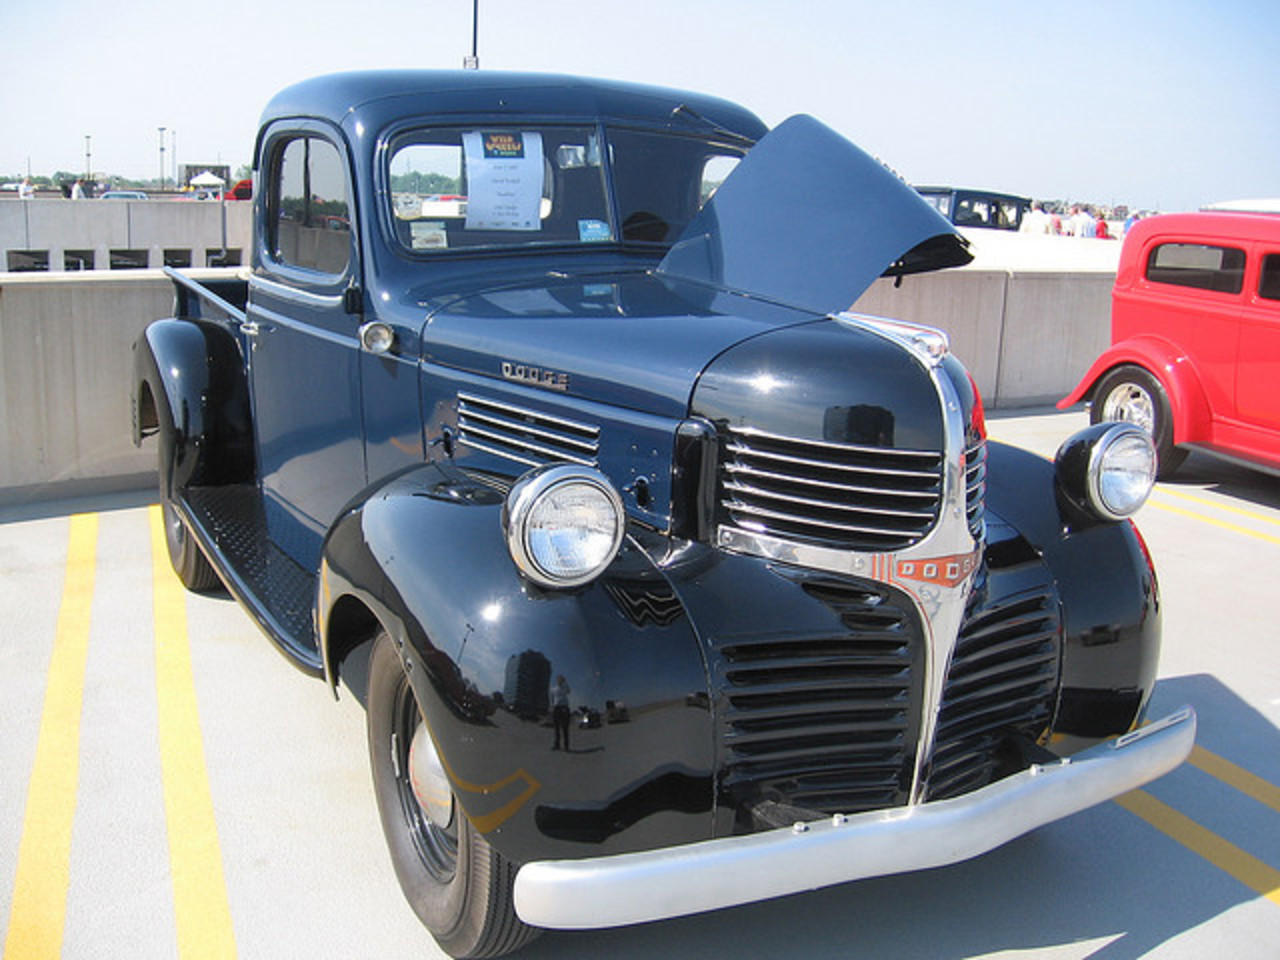 1947 Dodge Half-Ton Pickup at Chrysler Wild Wheels @ Work | Flickr ...